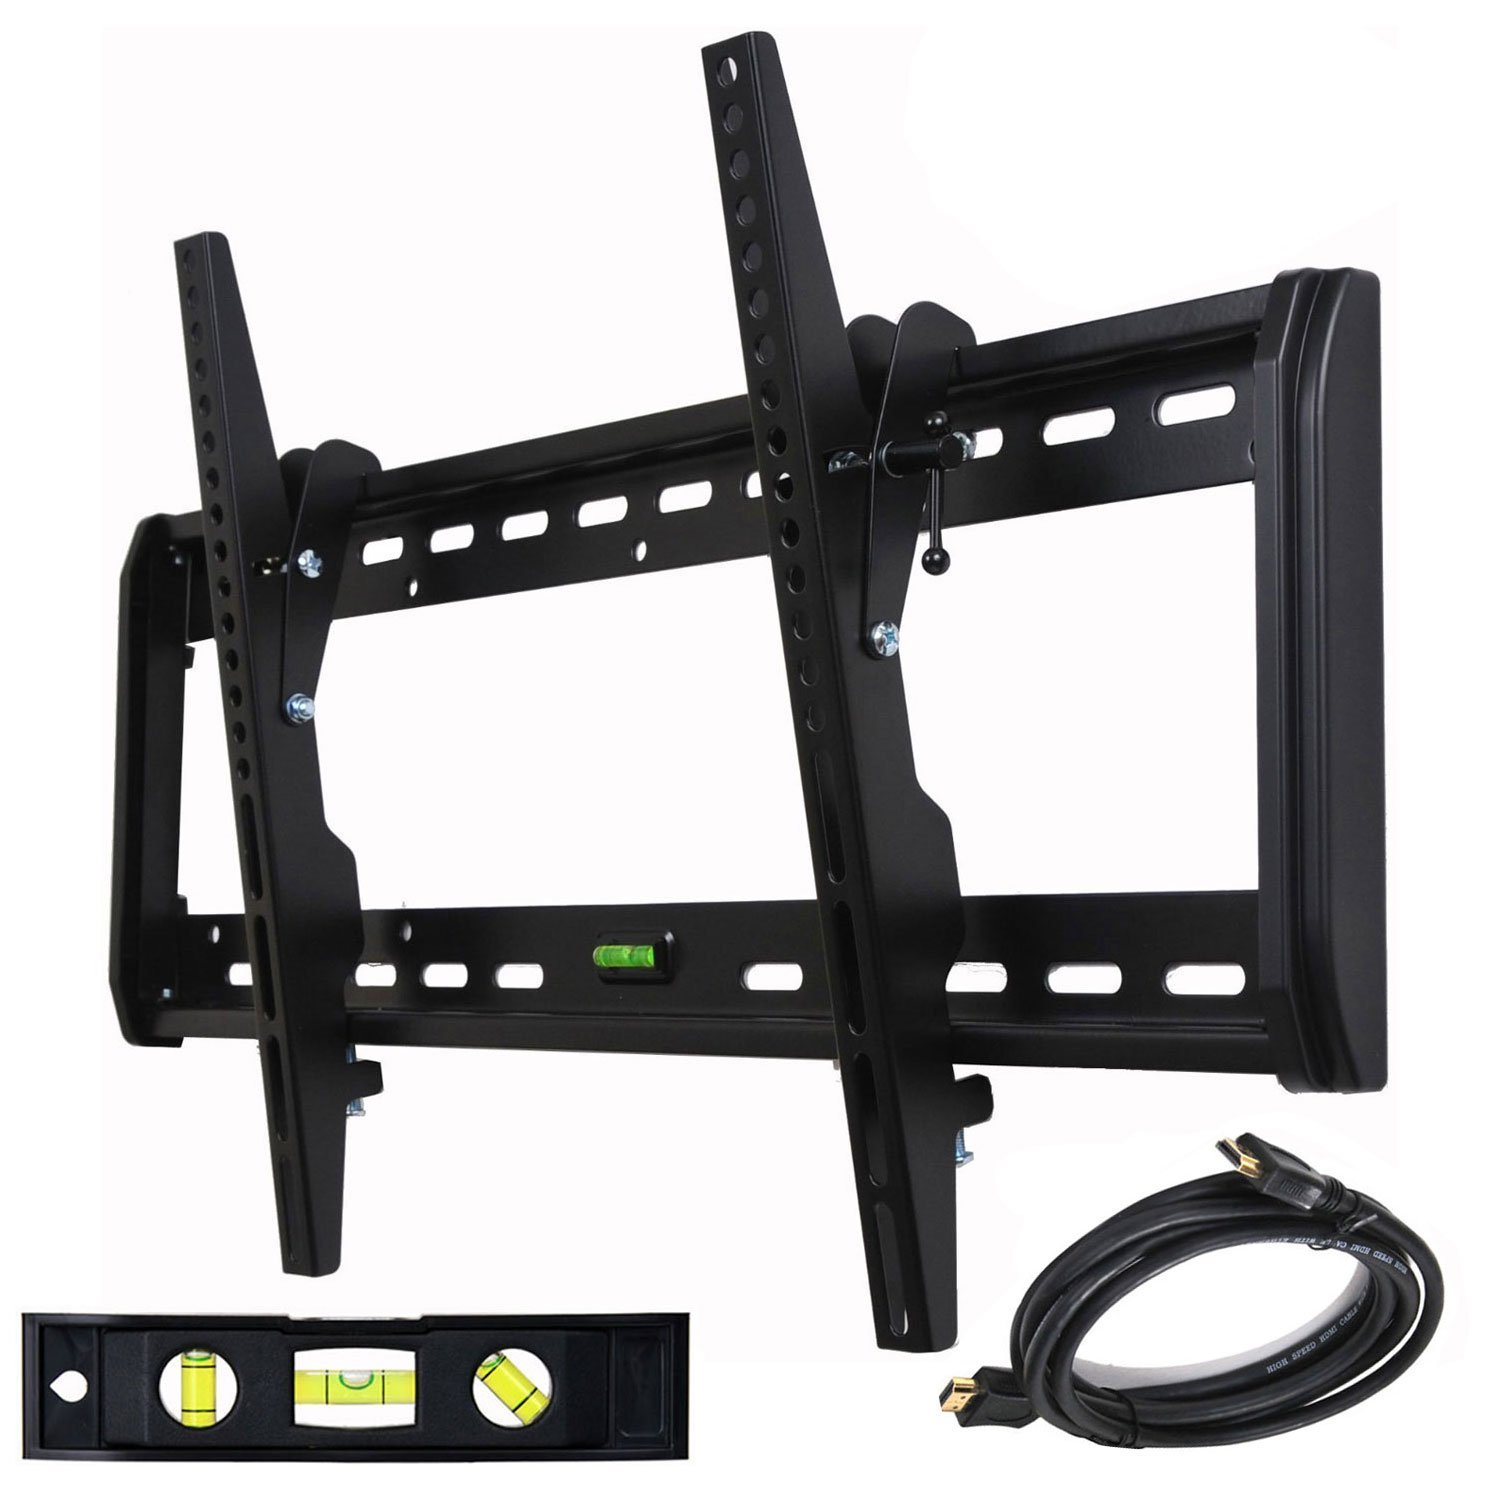 "VideoSecu Tilt TV Wall Mount for Sony Vizio LG Sharp Panasonic 39 40 42 43 46 47 48 50 55 60 65 75"" LCD LED Plasma M33"